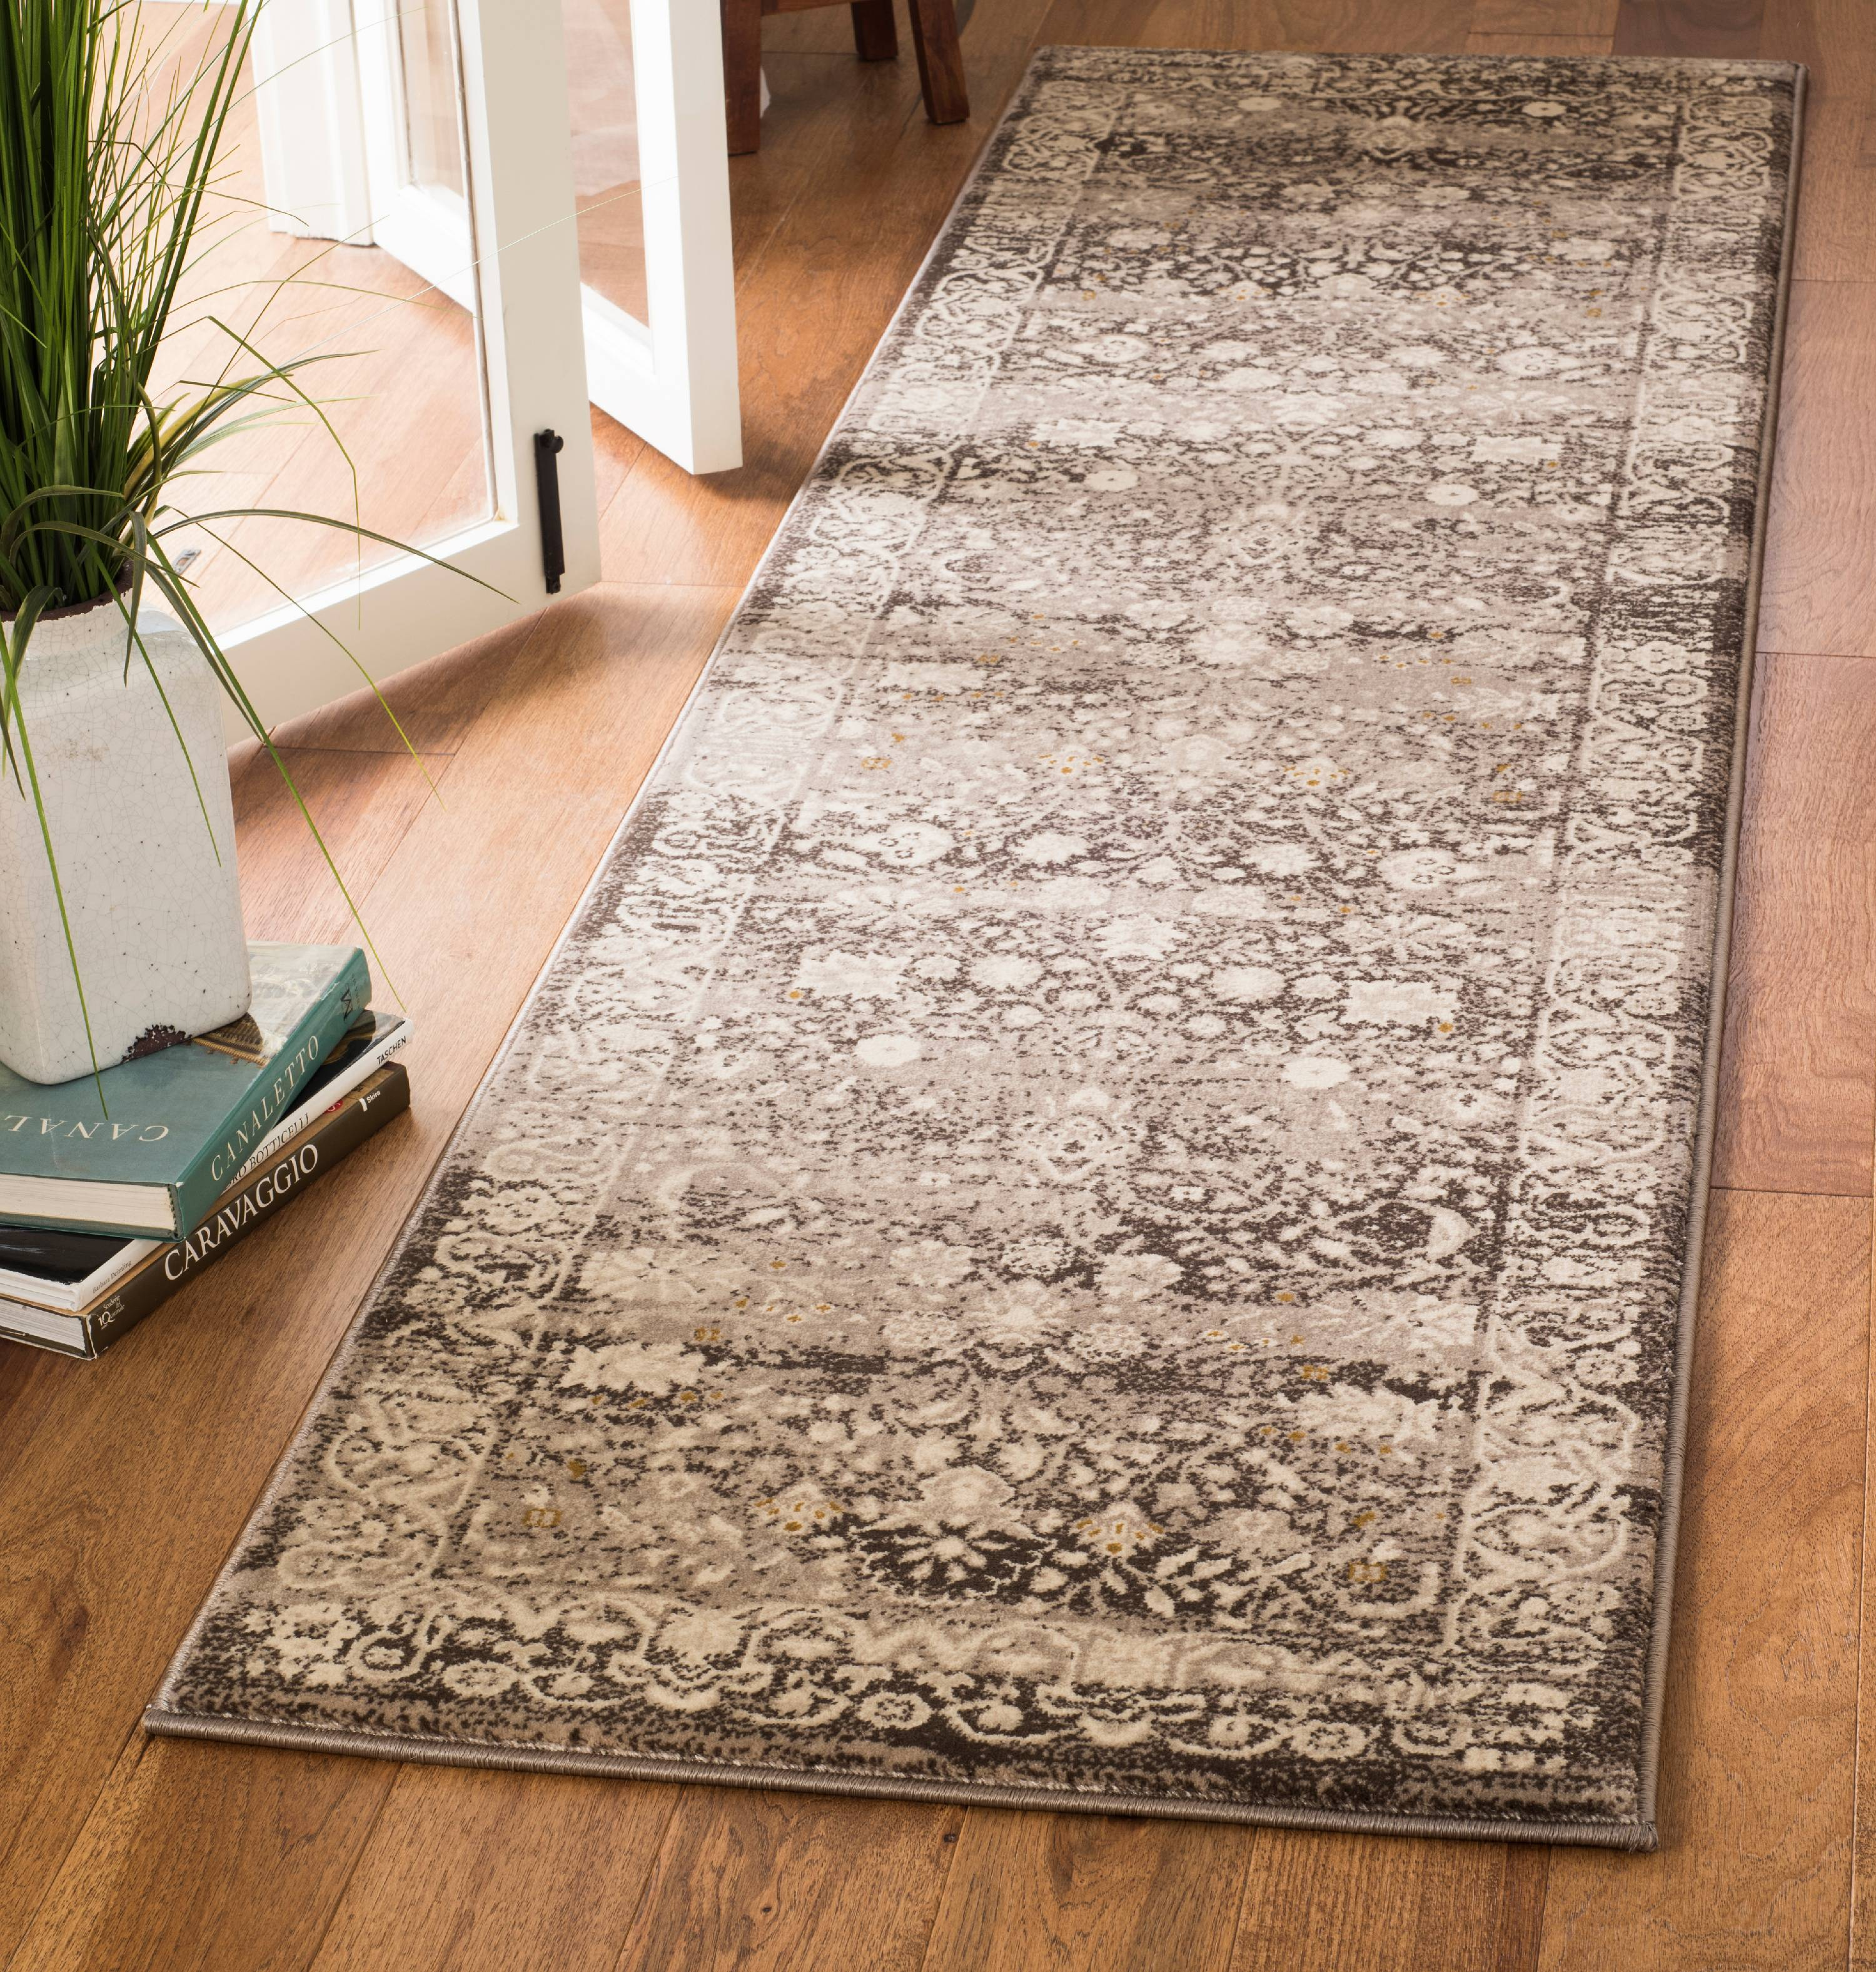 Safavieh Serenity Valentin Border Area Rug or Runner